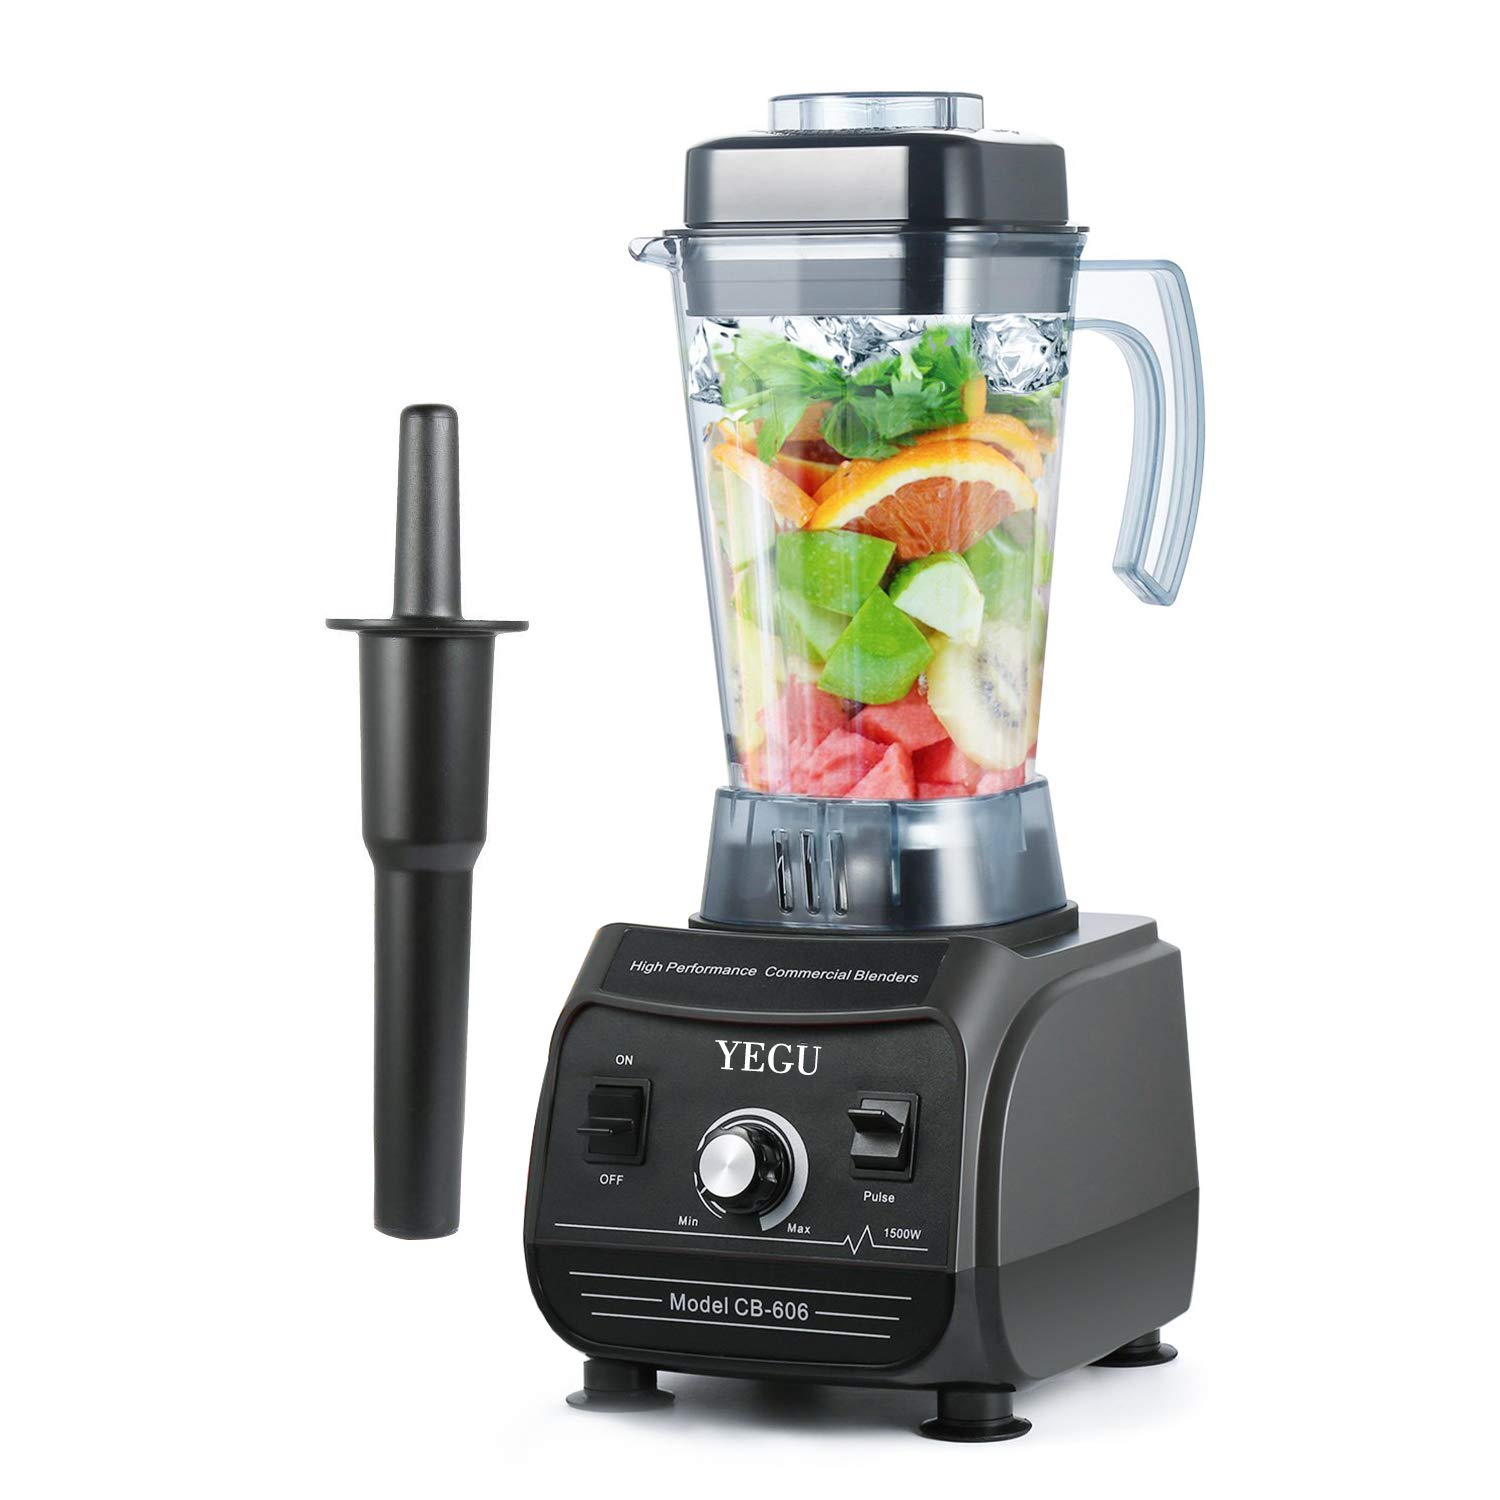 YEGU 1500W Pofessional High Speed Blender 27000 R/Min Blender for Kitchen, Fruits, Vegetable, Even Nuts, 67 OZ Container with Pulse Self-Cleaning